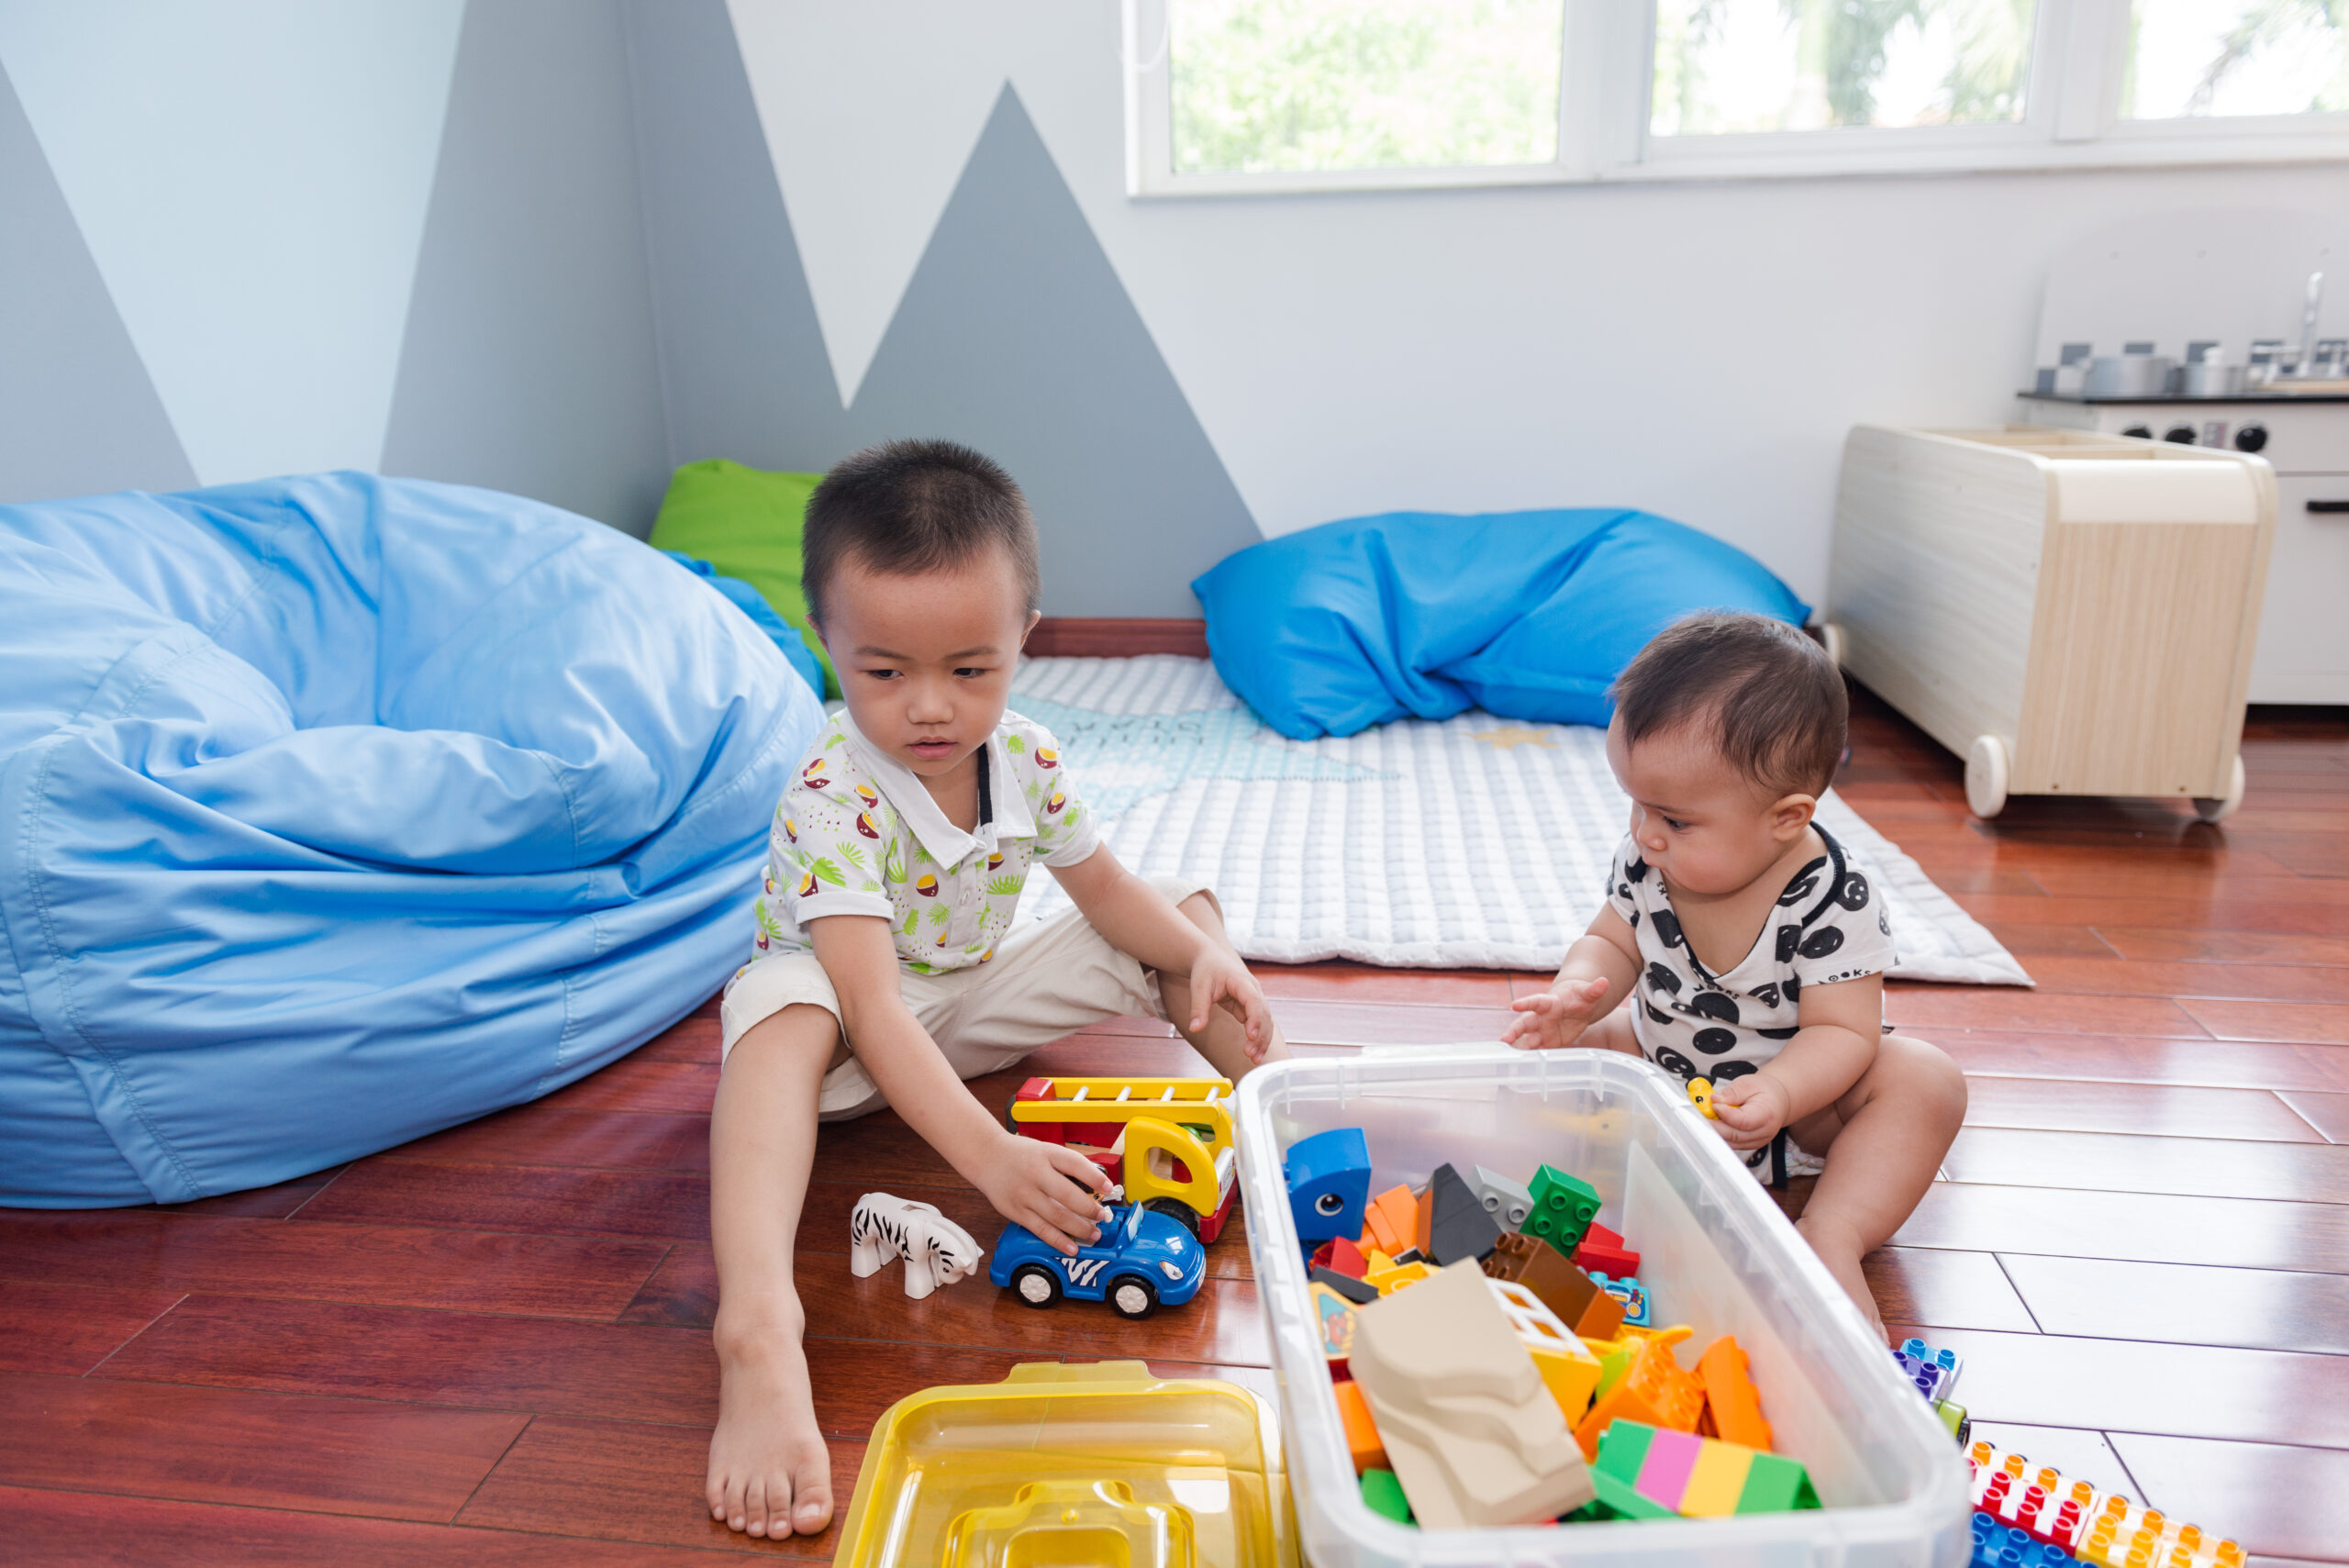 What is safety in early childhood education?